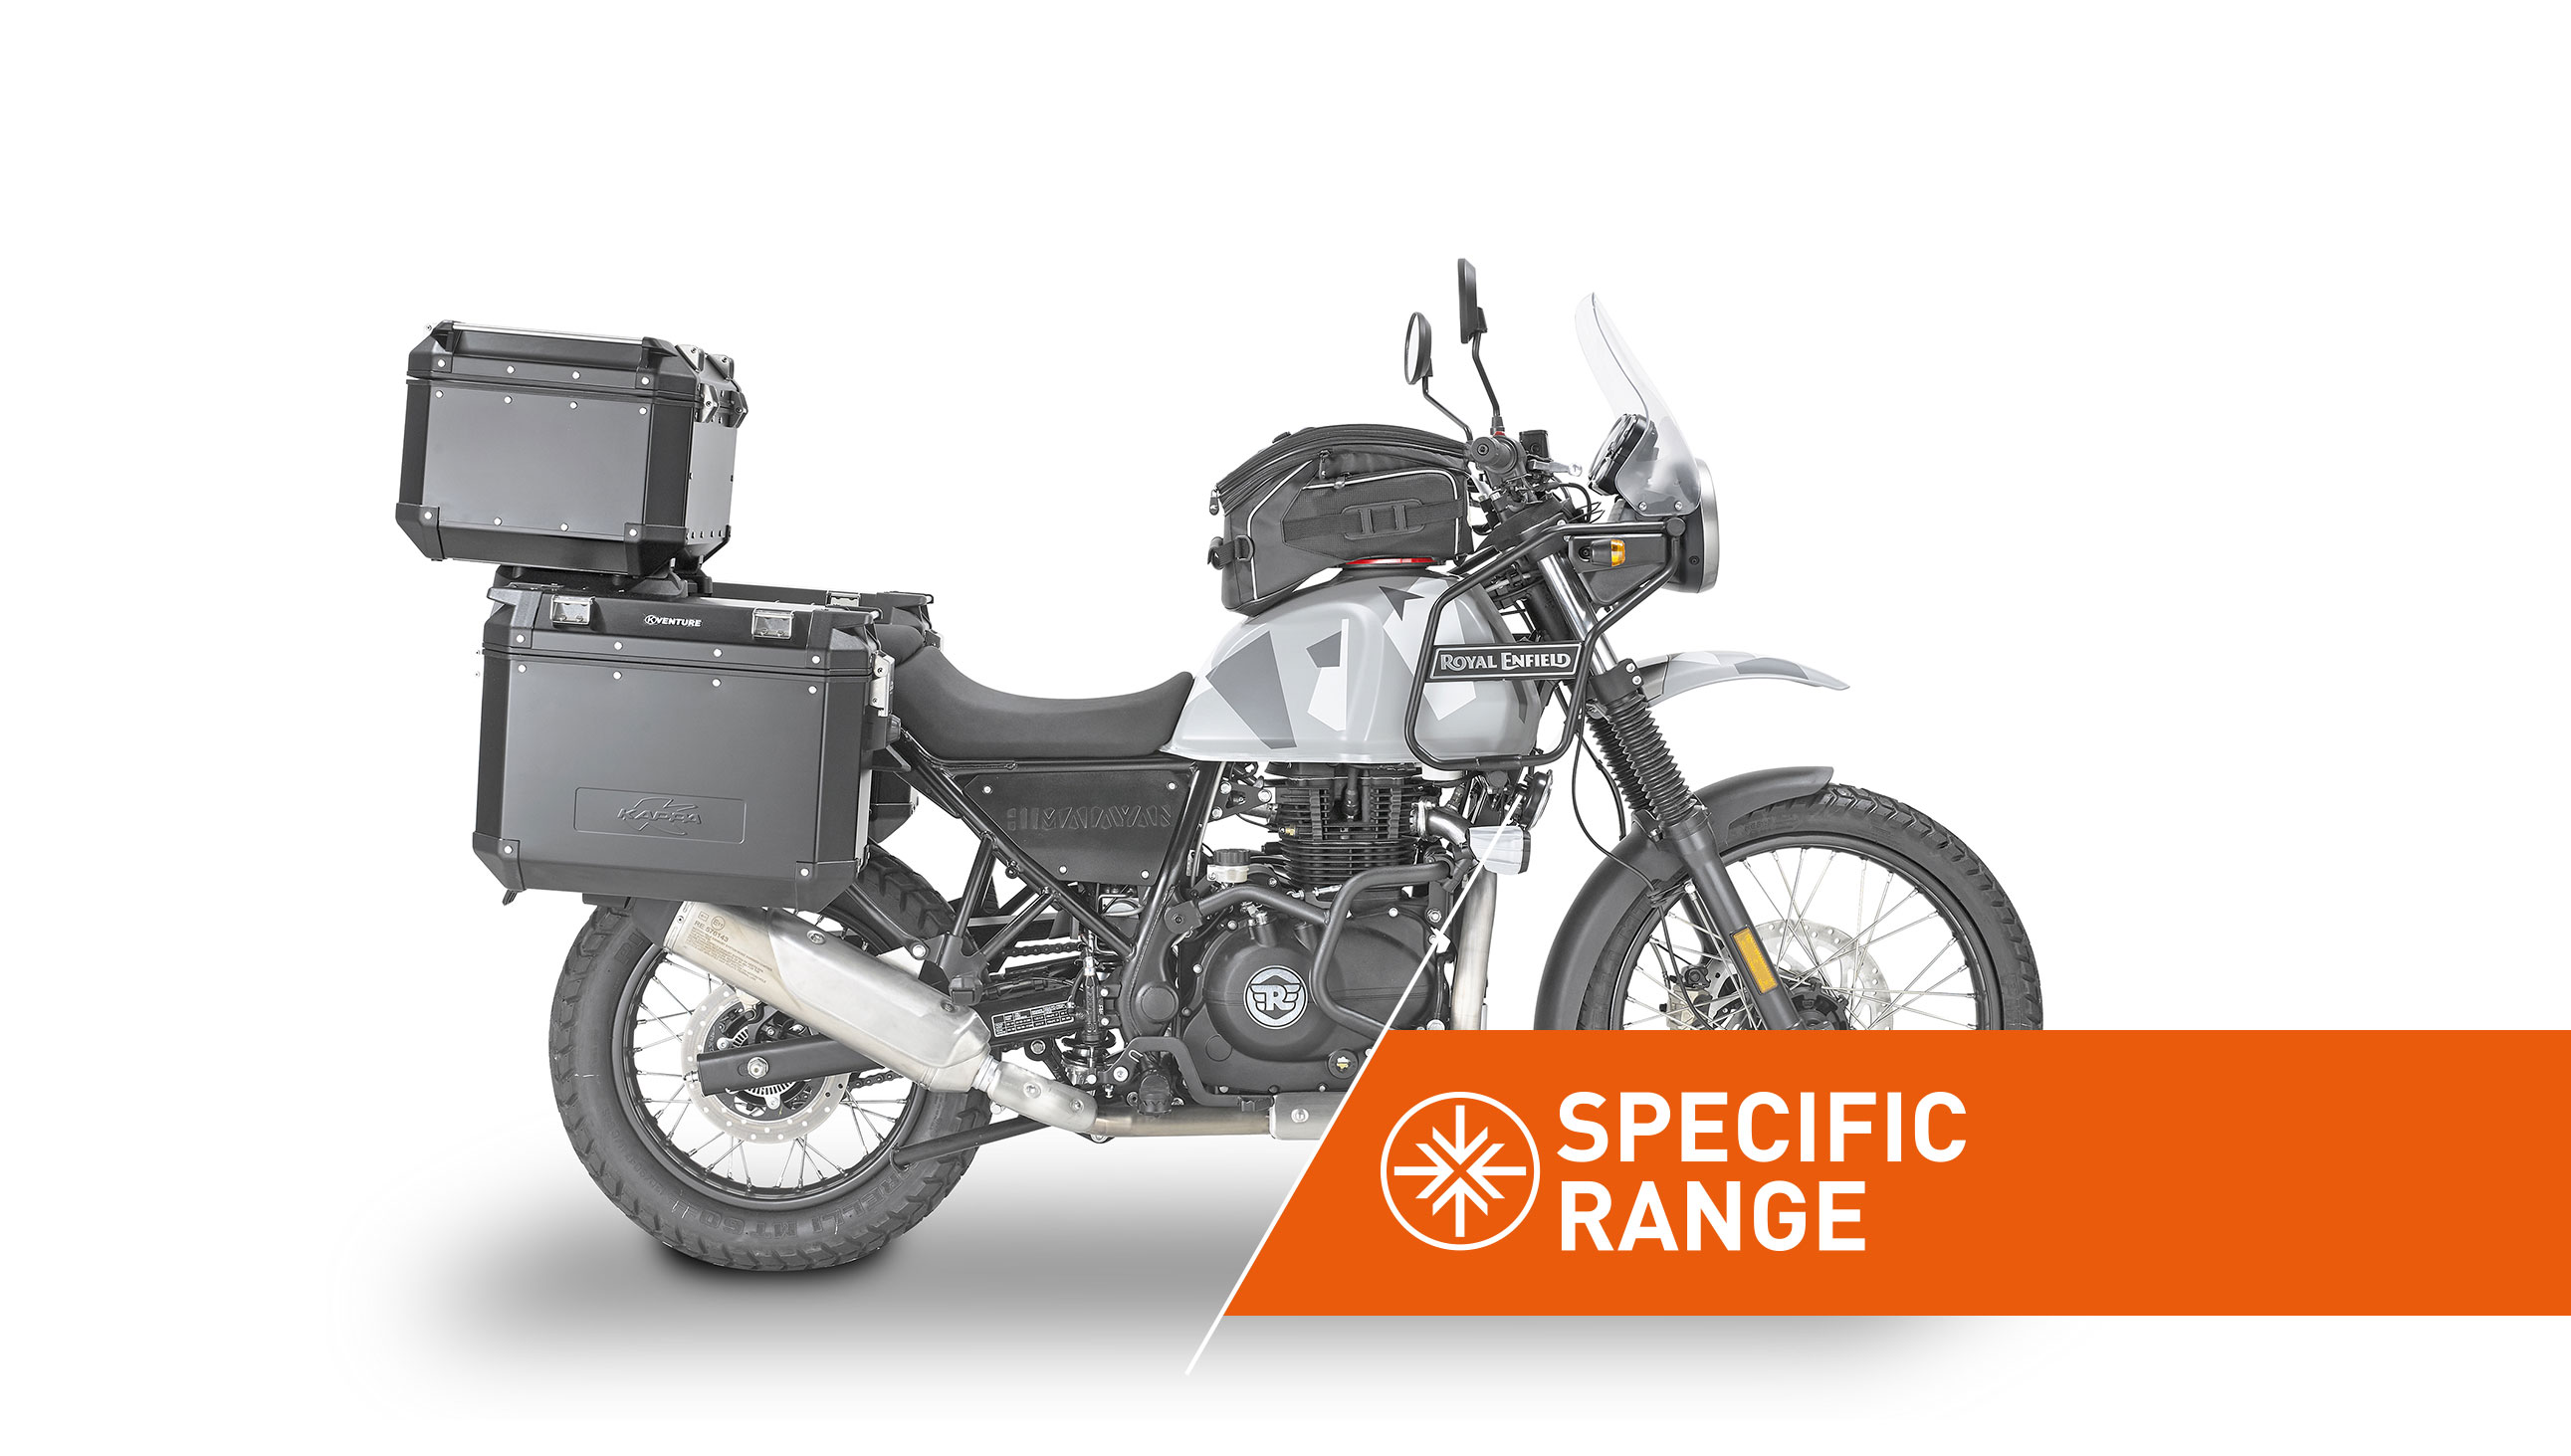 Specific range accessories for ROYALENFIELD HIMALAYAN by KAPPA MOTO.